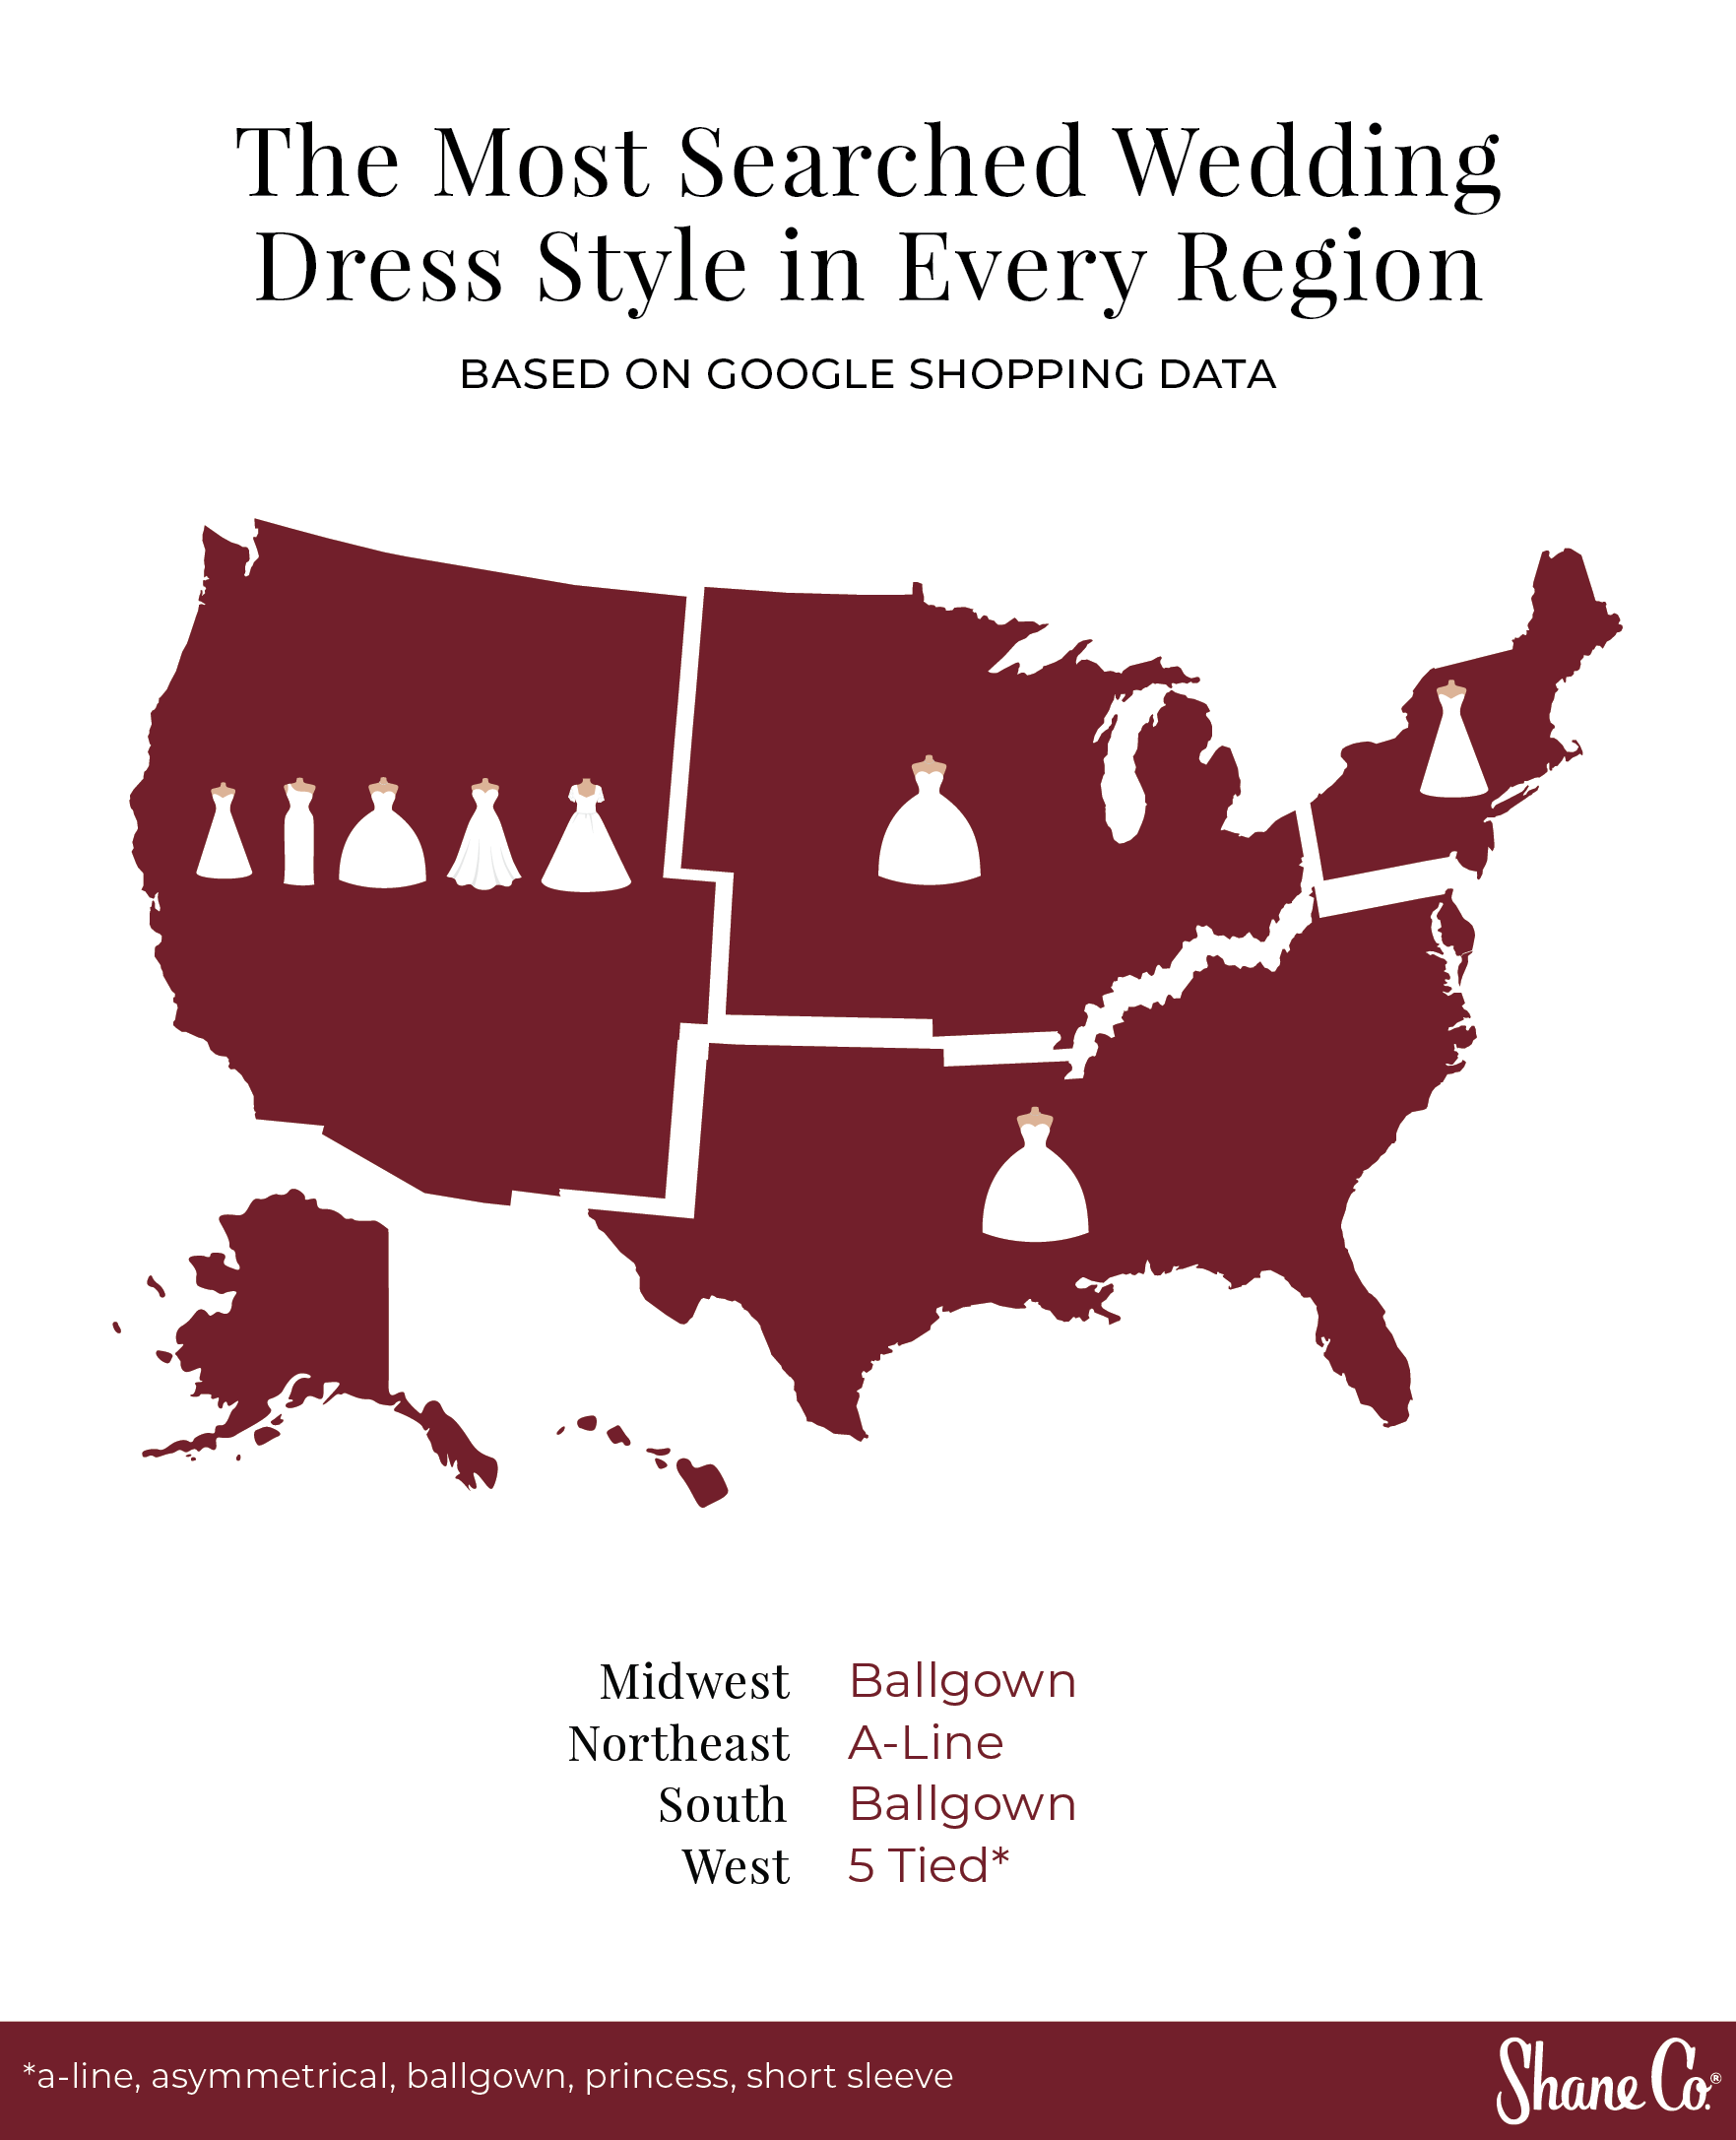 US map showing the most searched wedding dress style per region